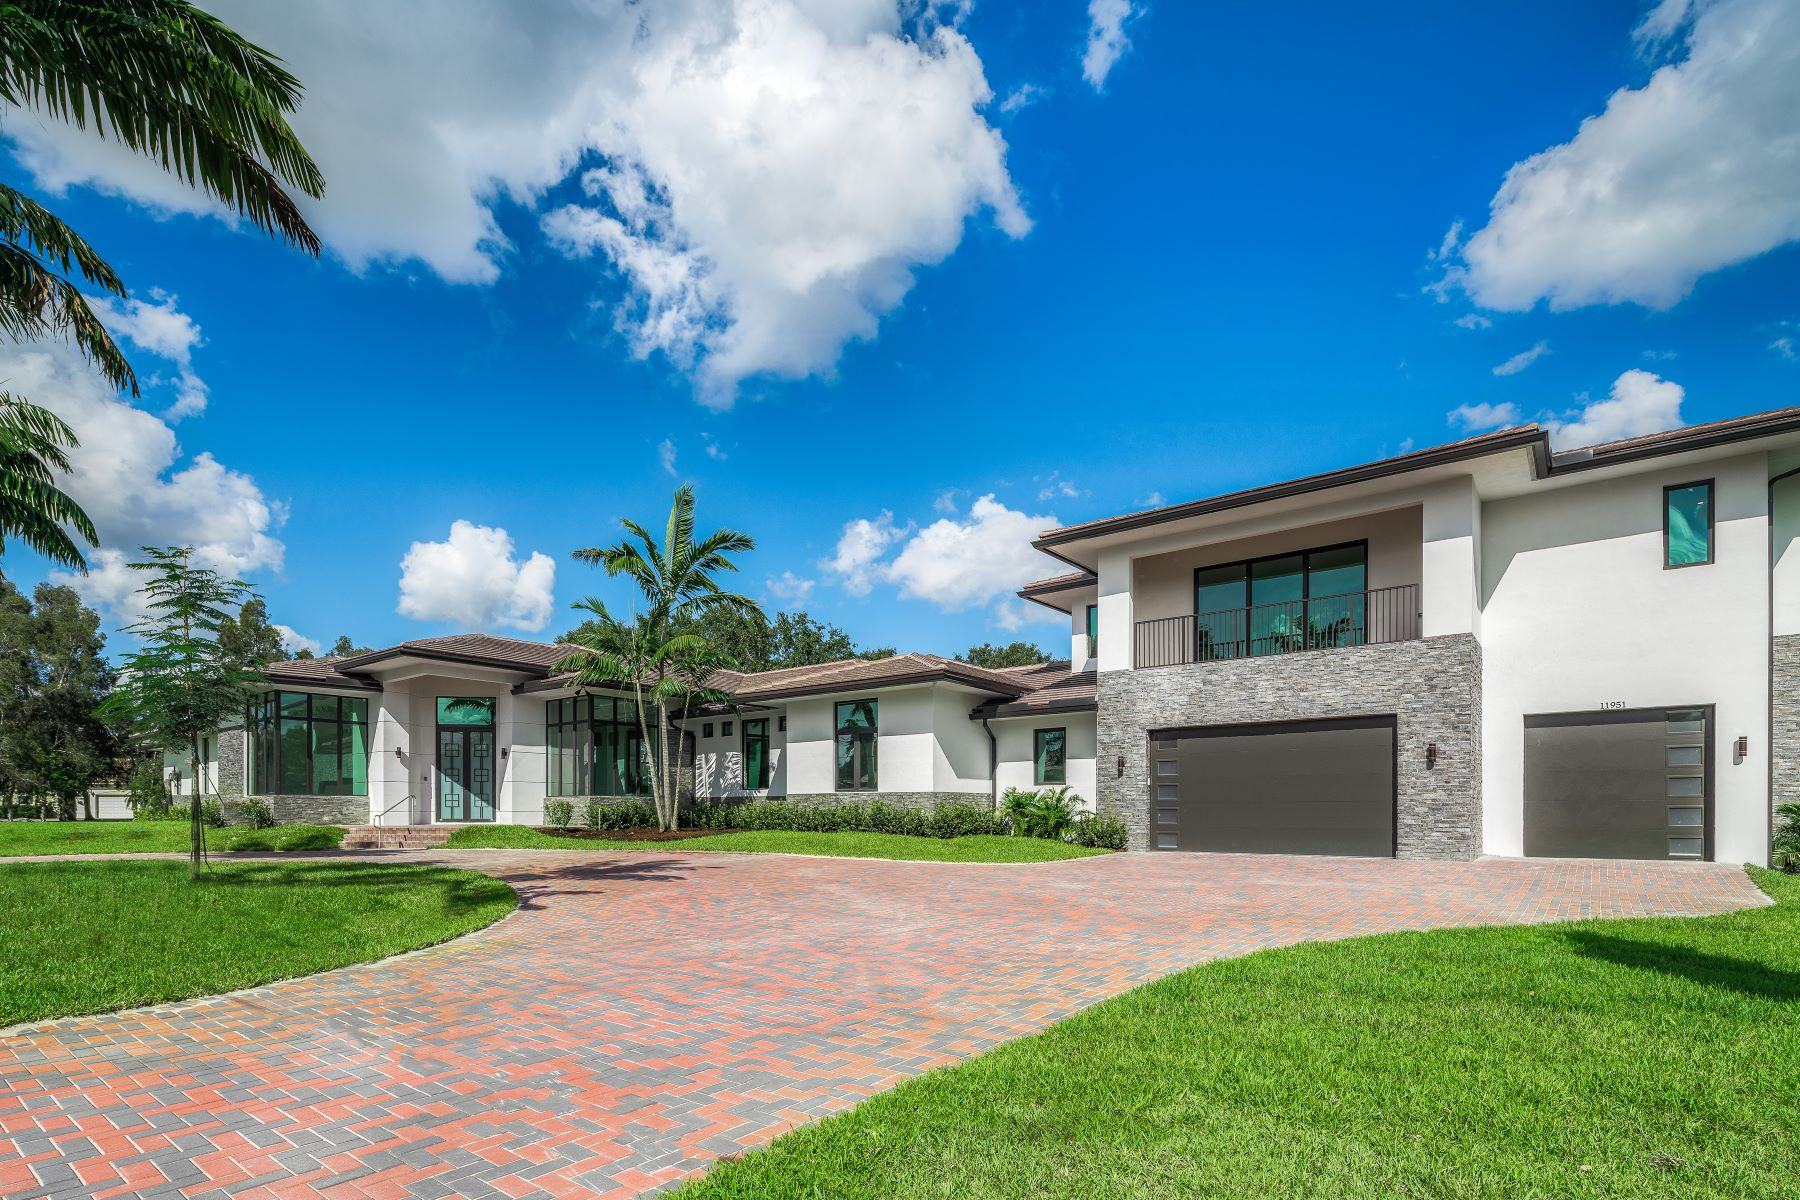 Single Family Homes for Sale at 11951 Nw 6th St Plantation, Florida 33325 United States